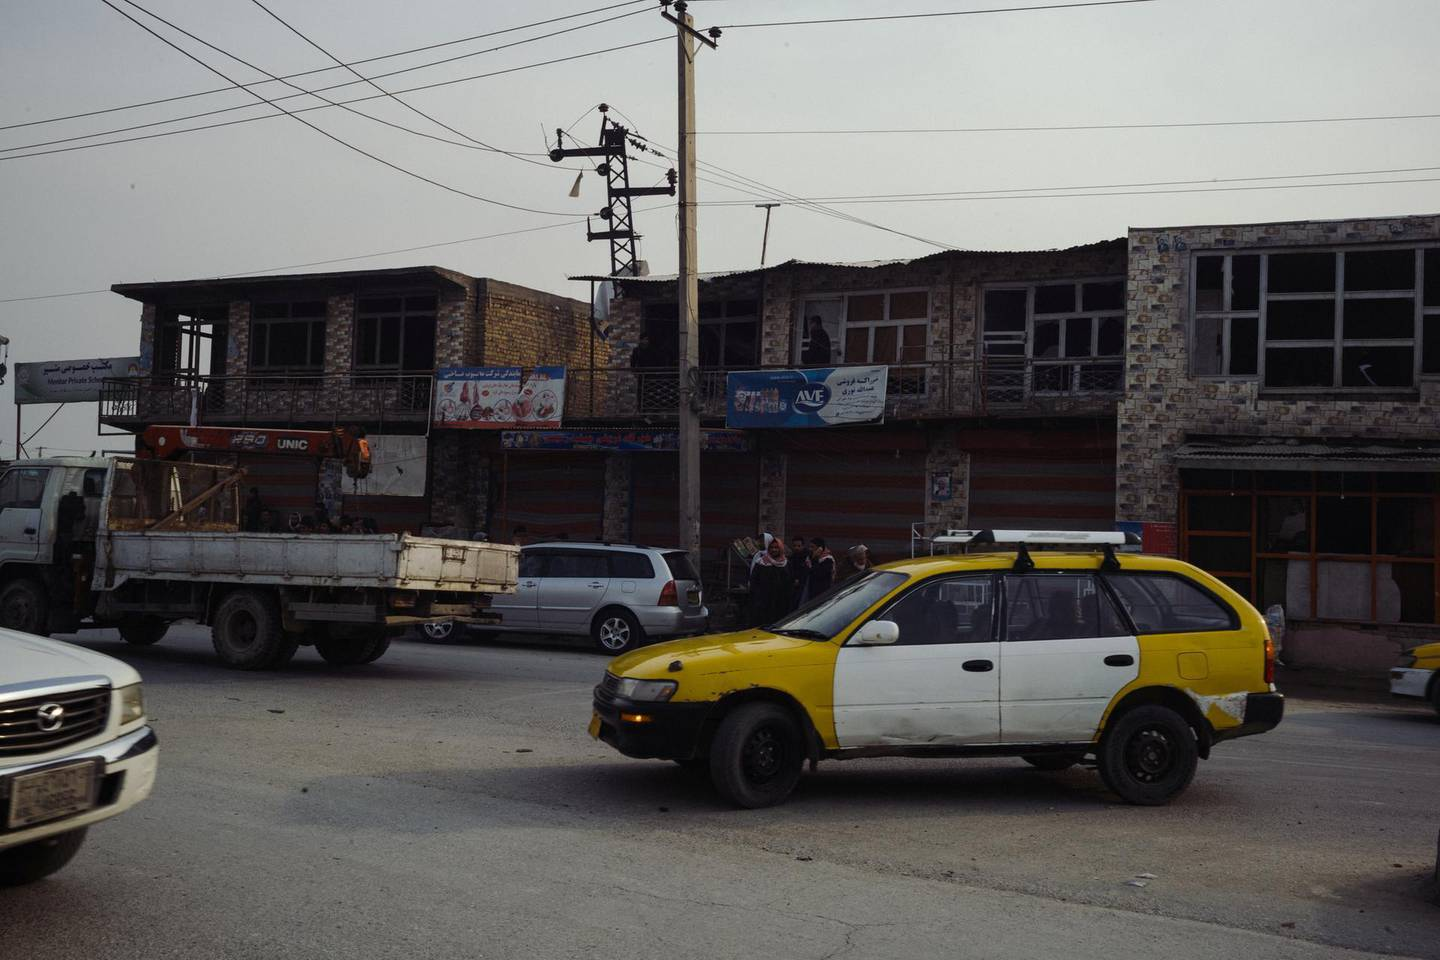 January 15th, 2019 - Kabul, Kabul, Afghanistan:  Cars and Taxis drive past damaged shops and homes in the Qabil Bai district of Kabul. The shops were damaged by an explosion that targetted a foreigner compound.The attack on the Green Village, a compound in Kabul that houses foreign workers and NGO's, initially killed 9 and wounded over 120 Afghans who lived in the vicinity. There was also extensive property damage to the surrounding homes and shops. Ivan Flores/The National